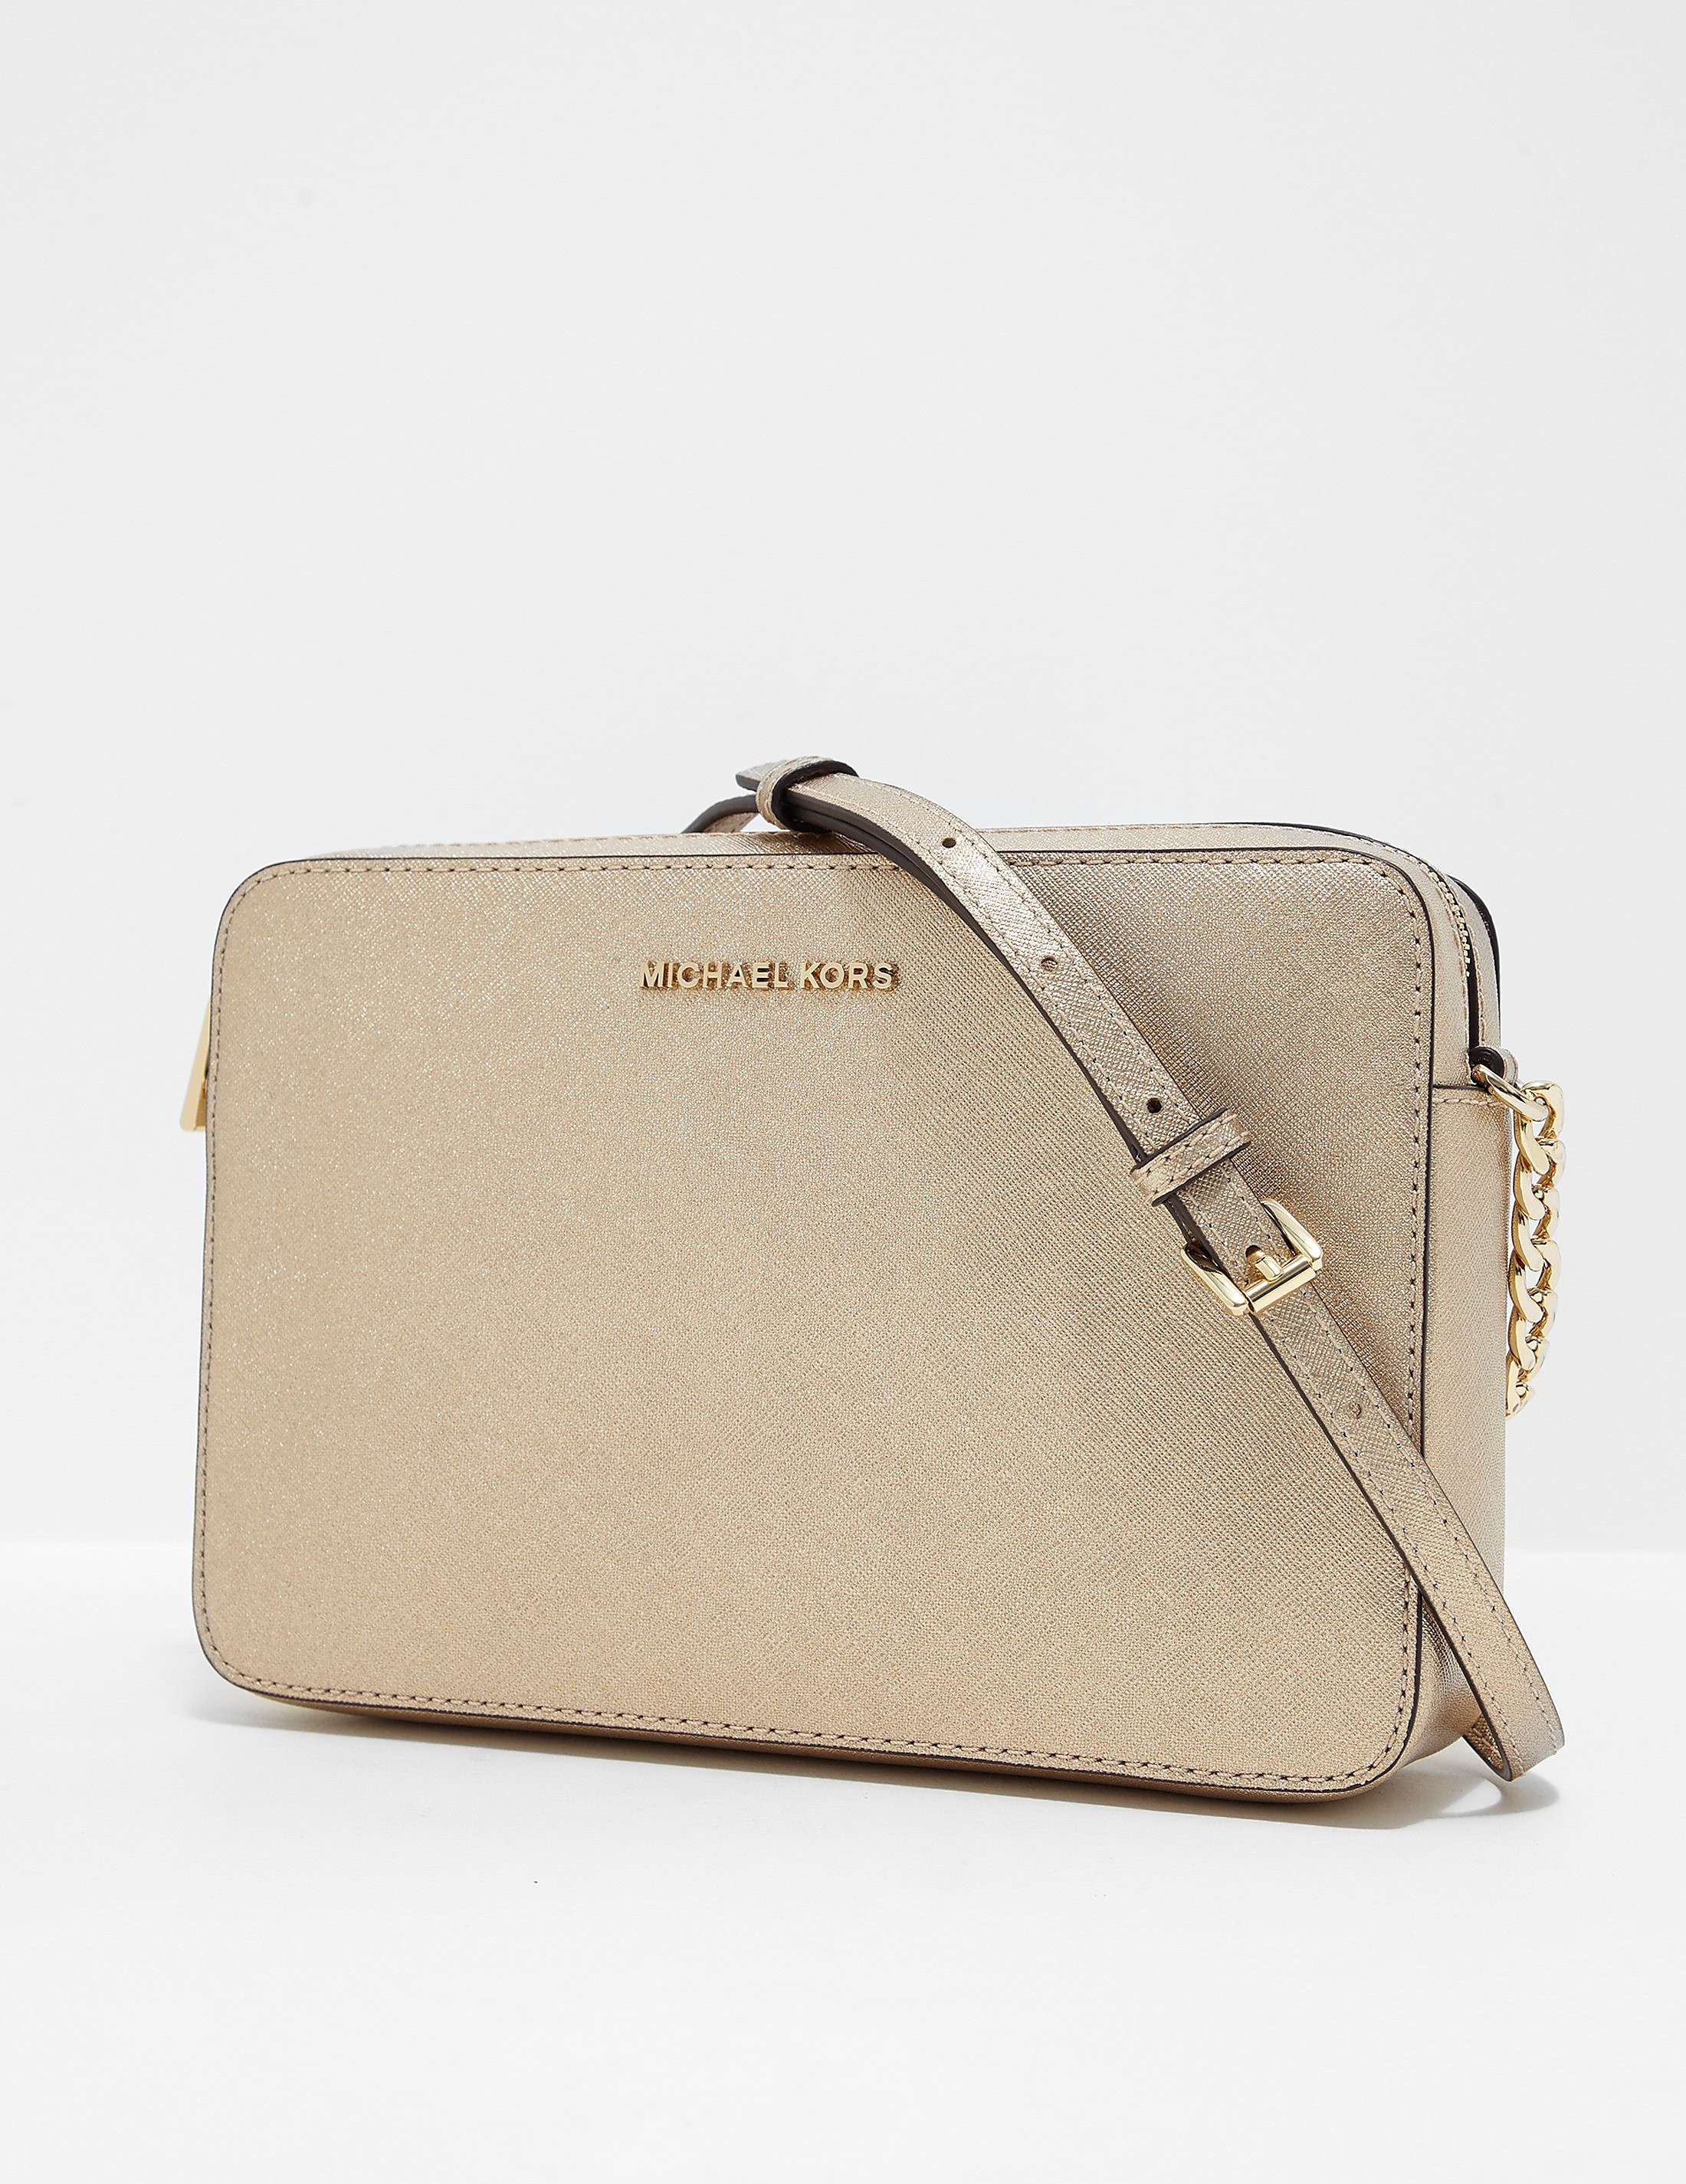 Michael Kors Crossbody Metallic Handbag